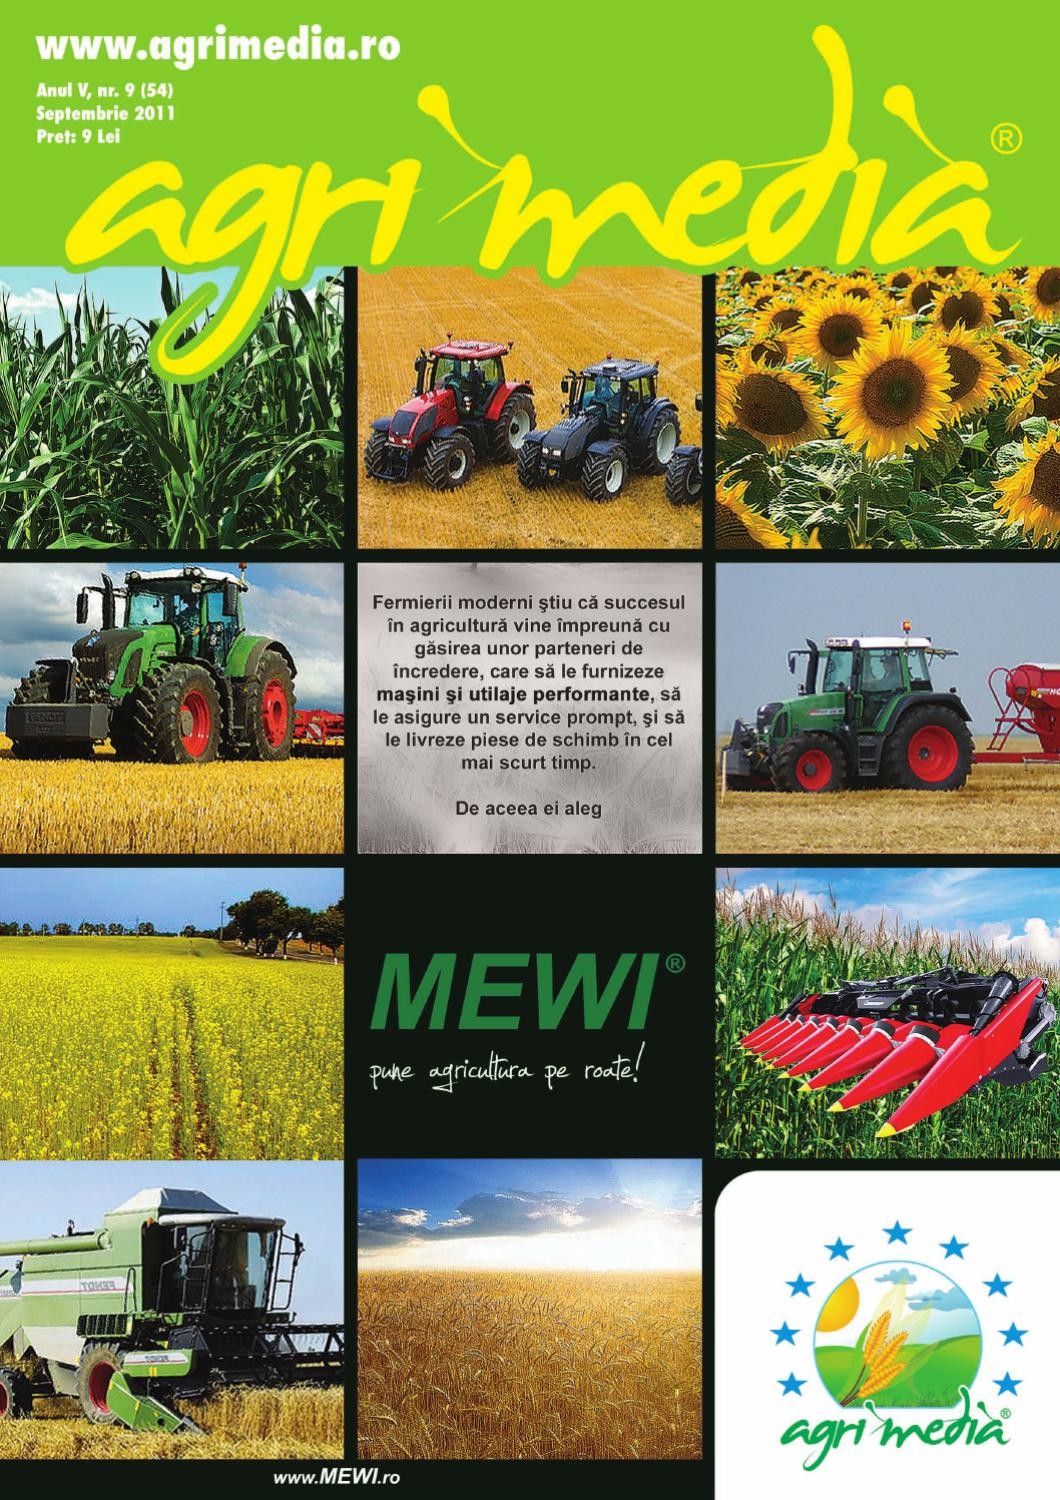 Revista AGRIMEDIA Septembrie 2011 by Agri Media Invest s.r.l. - issuu